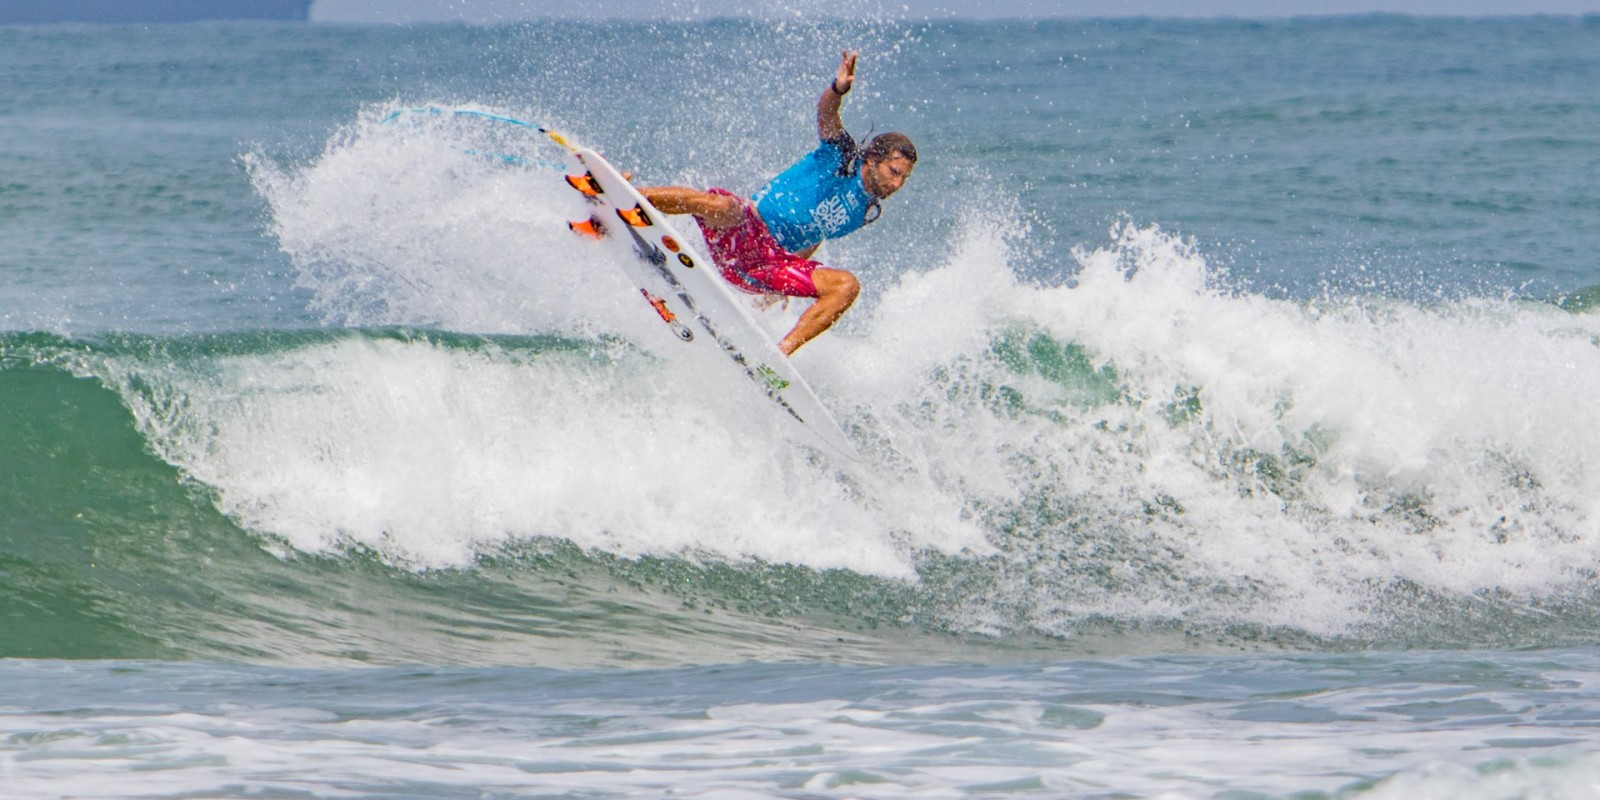 Dylan Southworth winning 3rd place at VANS Surf Open Acapulco